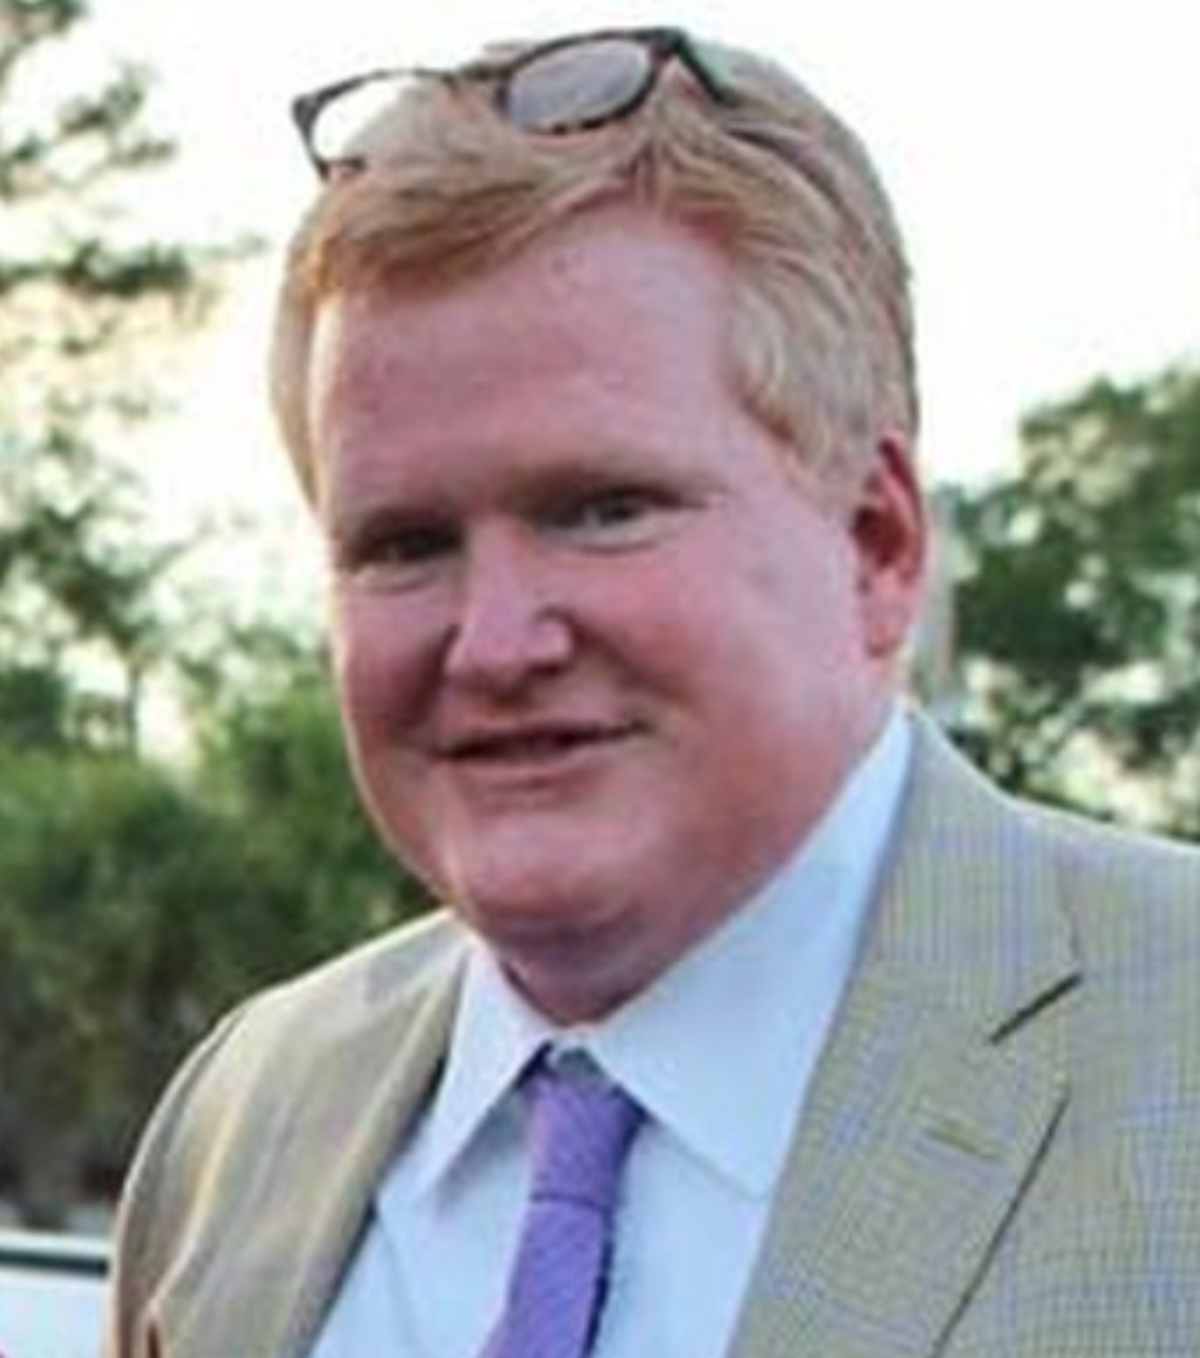 South Carolina lawyer at heart of mystery shootings turns himself in